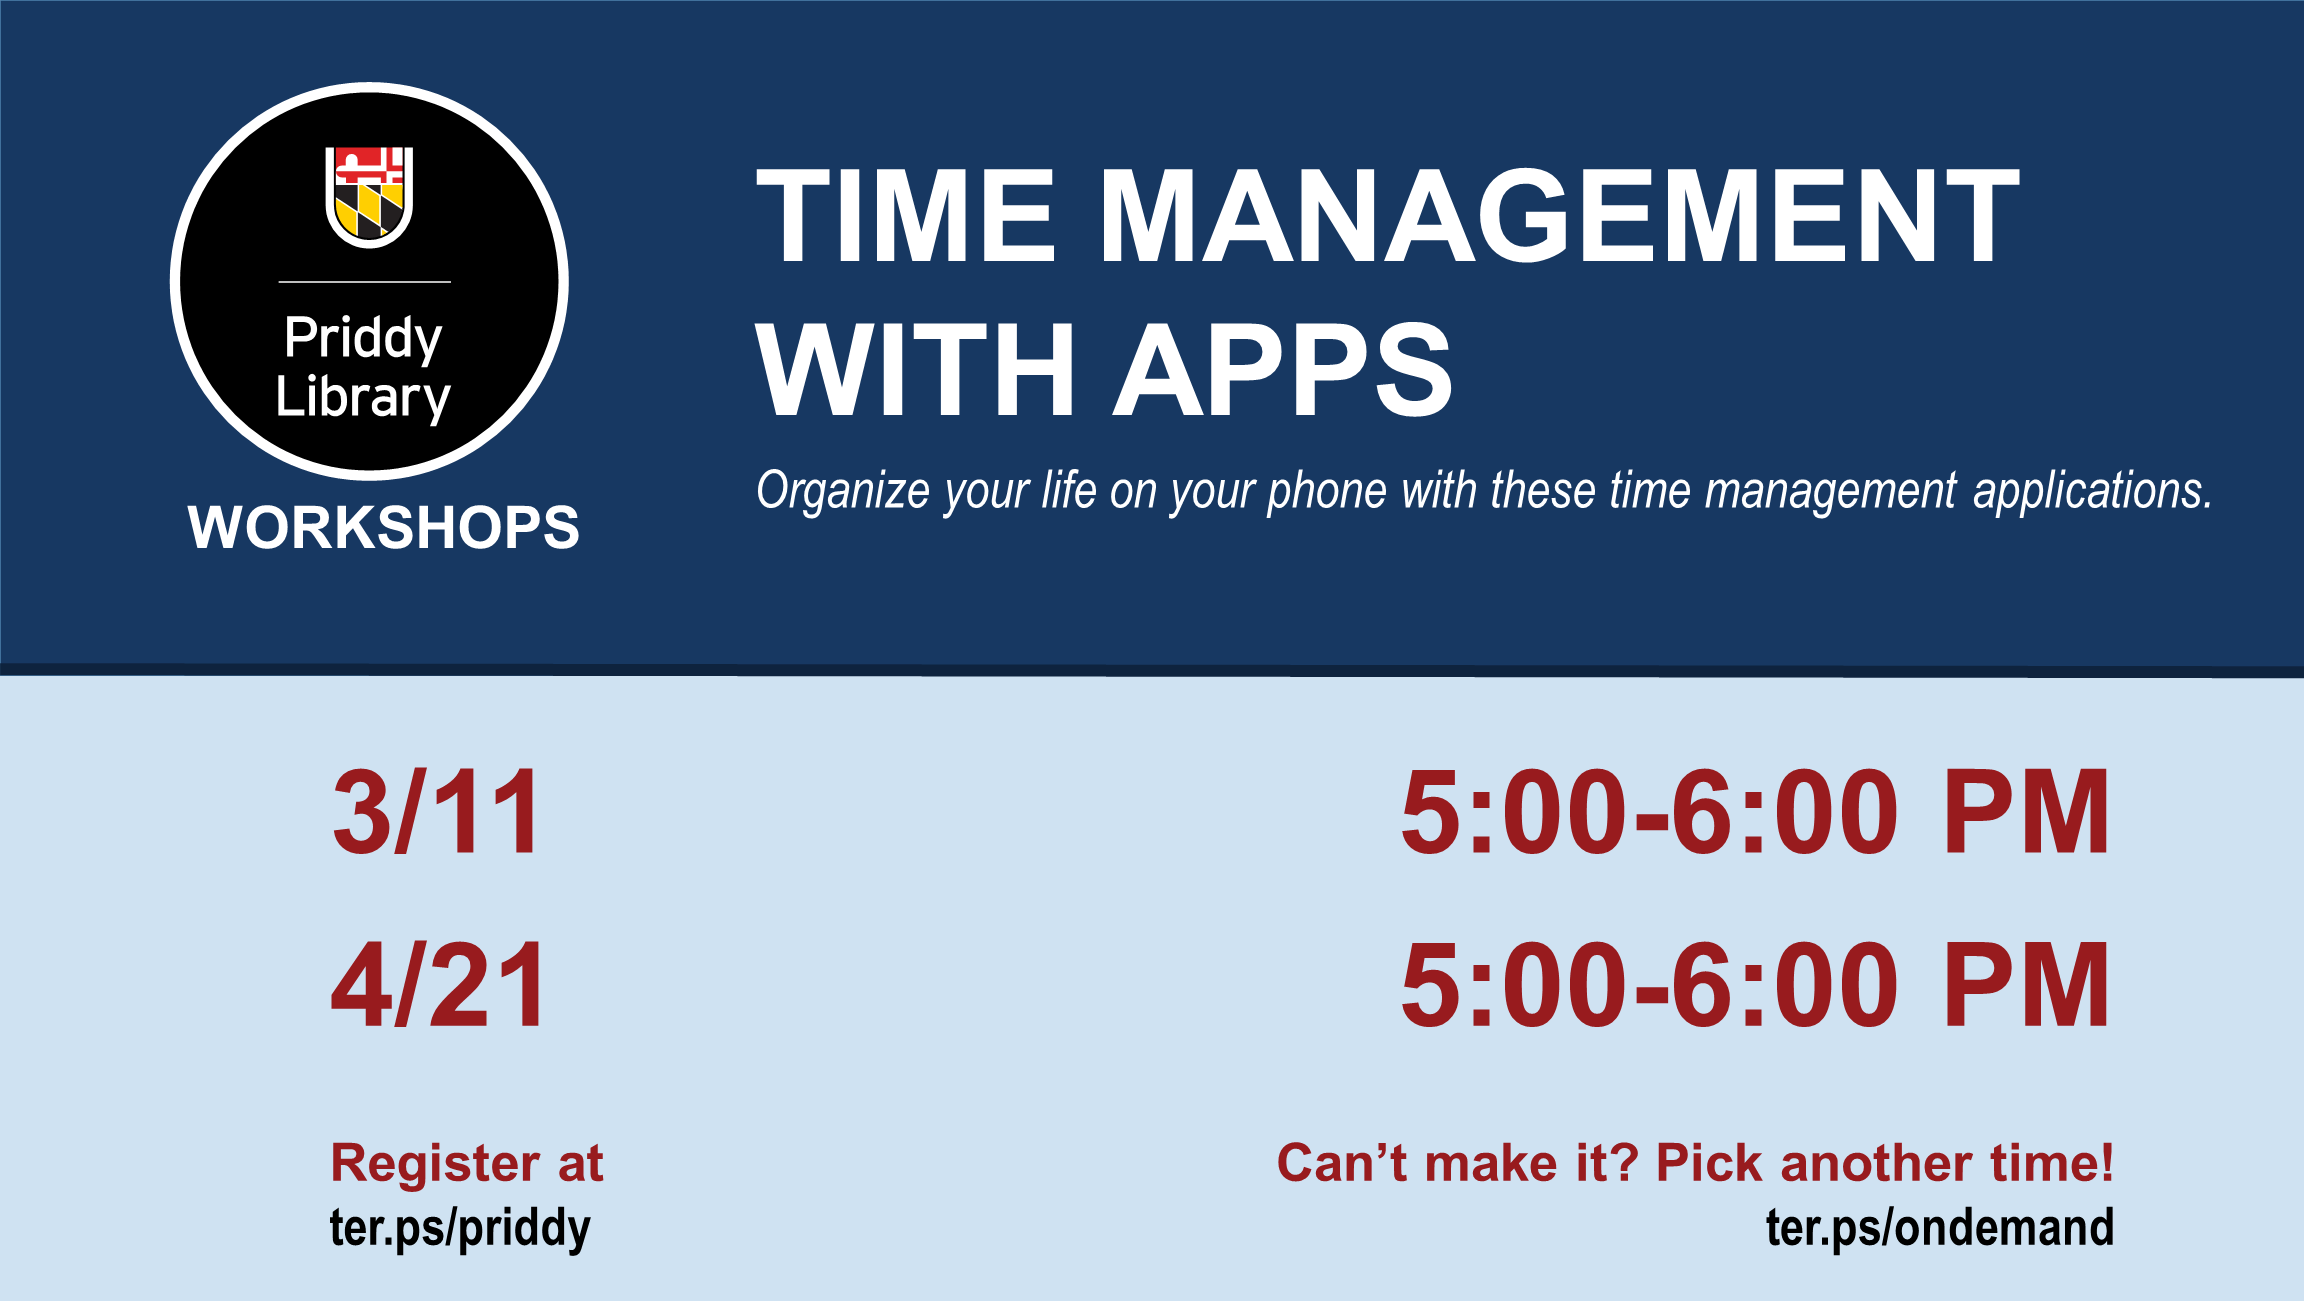 Time Management with Apps flyer